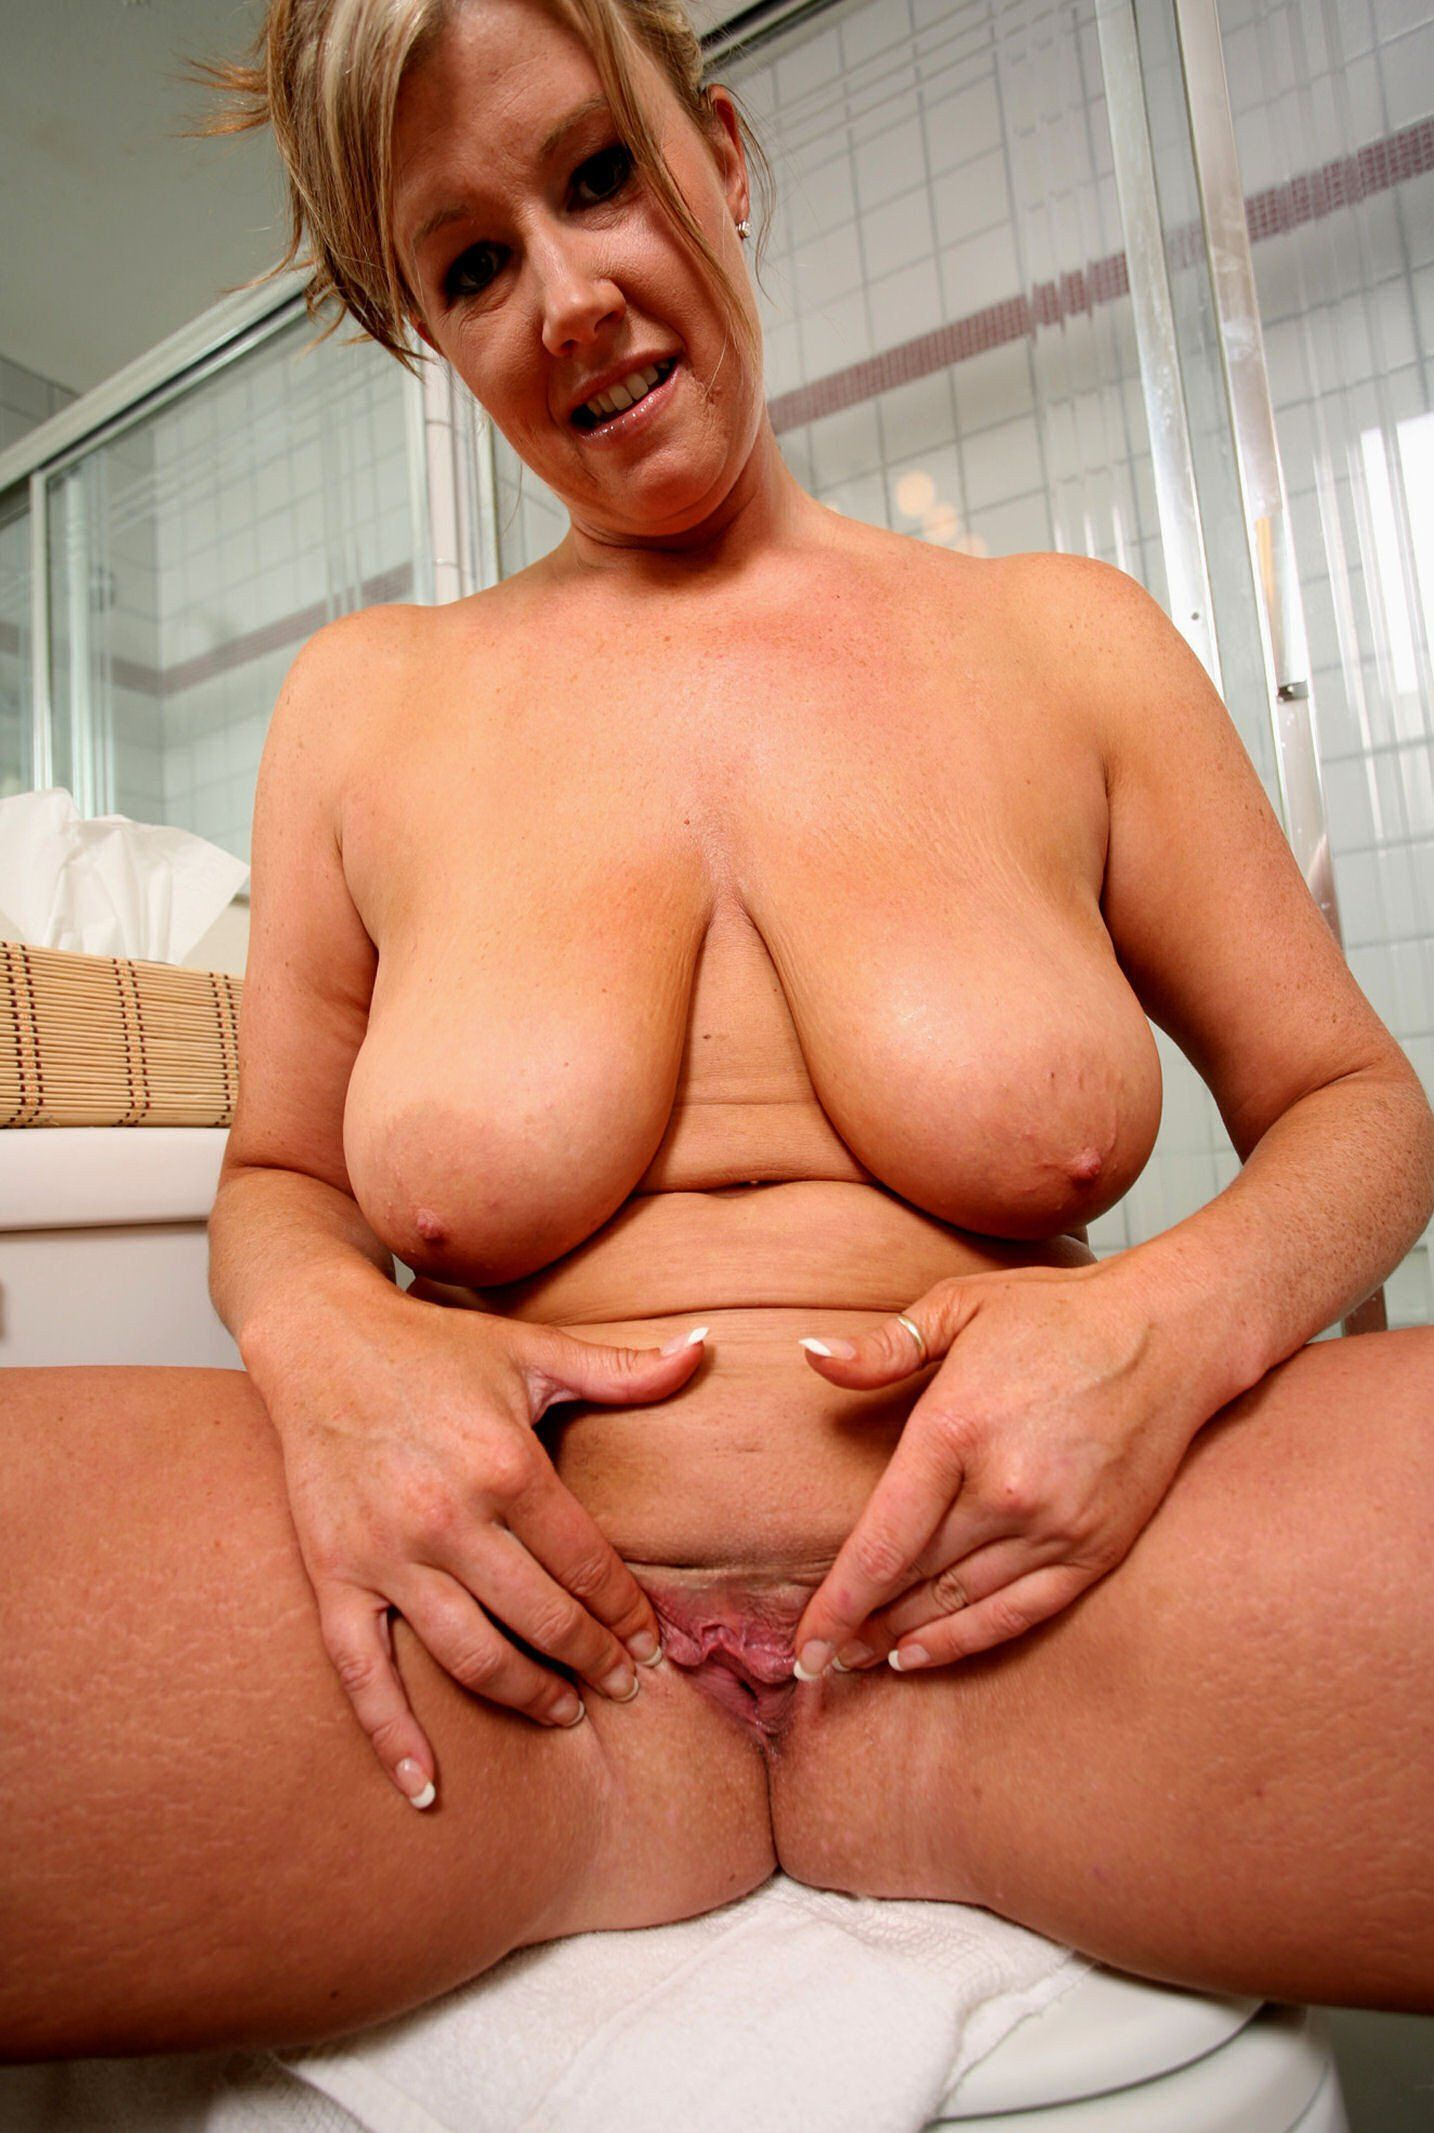 big woman of picture naked